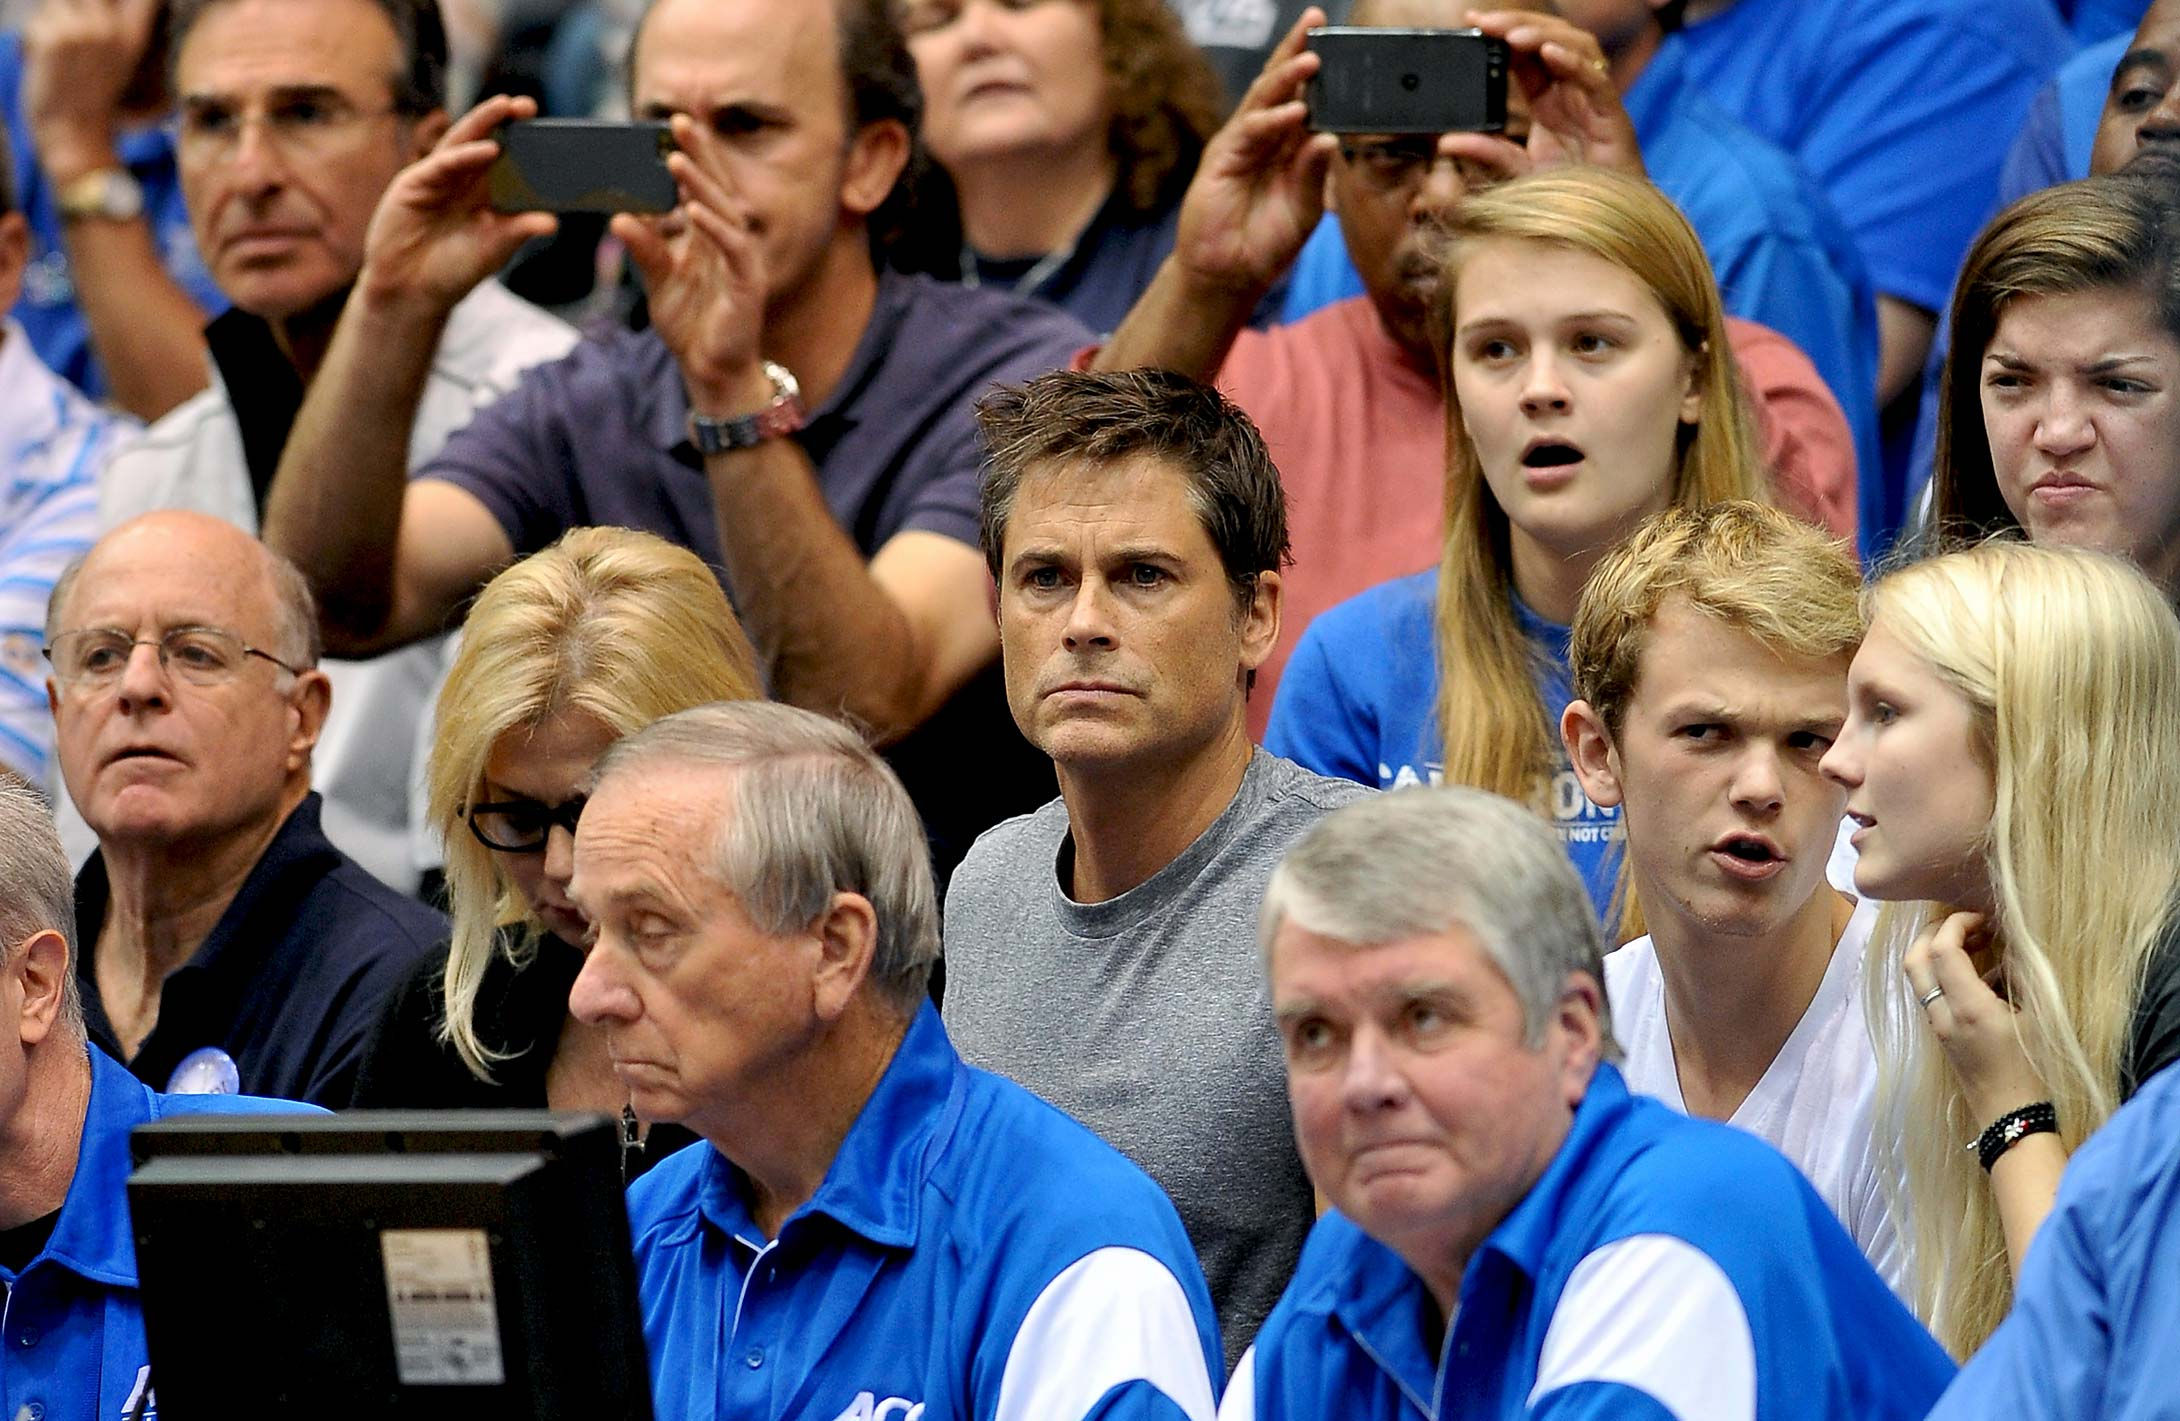 Rob Lowe looks on during a 2012 game between the Western Washington Vikings and the Duke Blue Devils at Cameron Indoor Stadium in Durham.